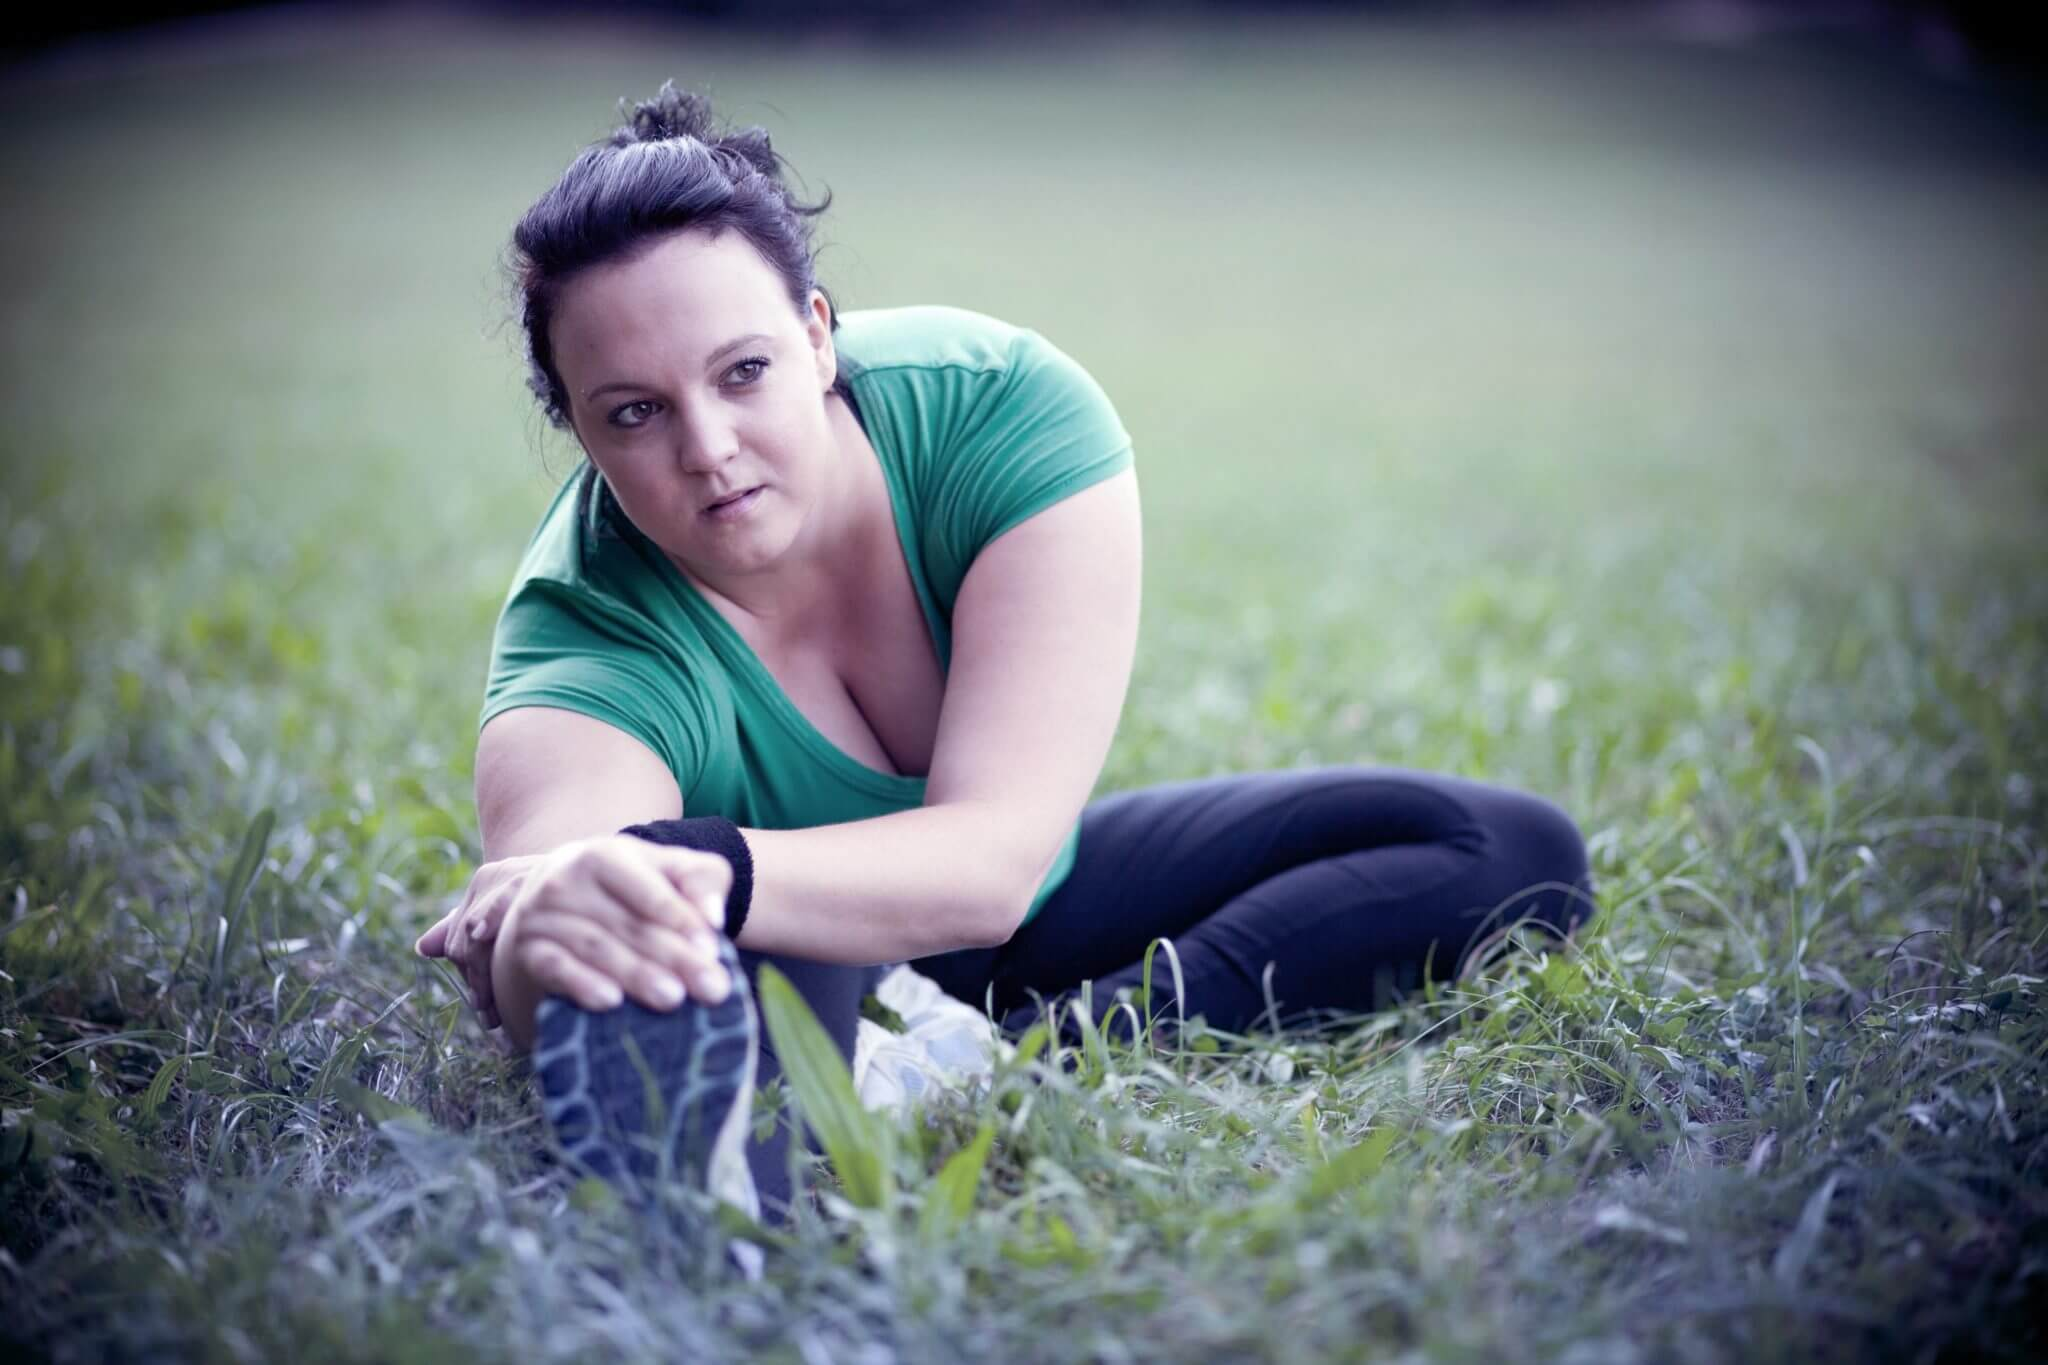 Image of plus sized woman stretching in a park